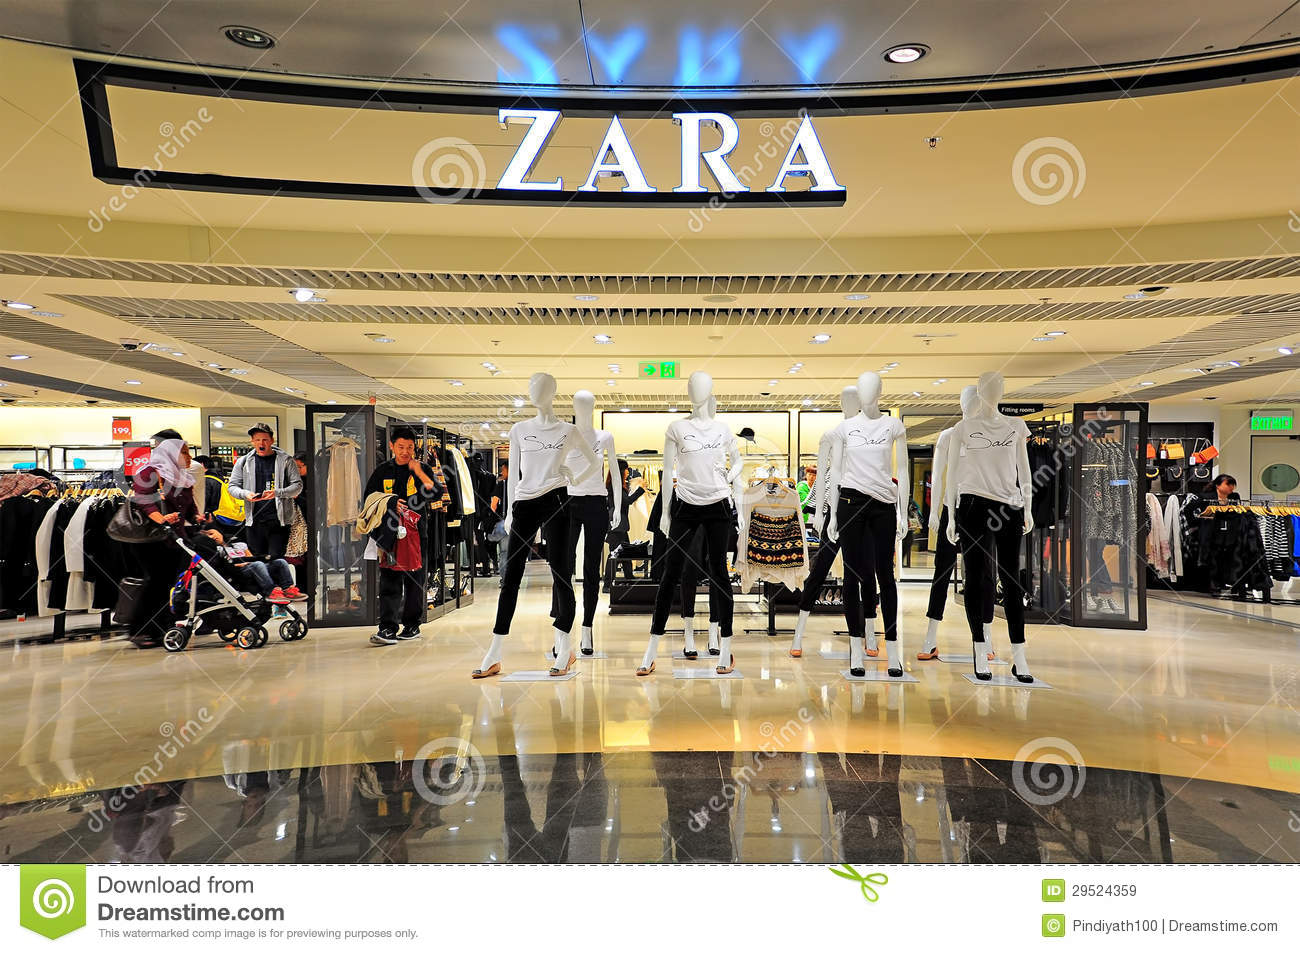 Zara clothing store locator